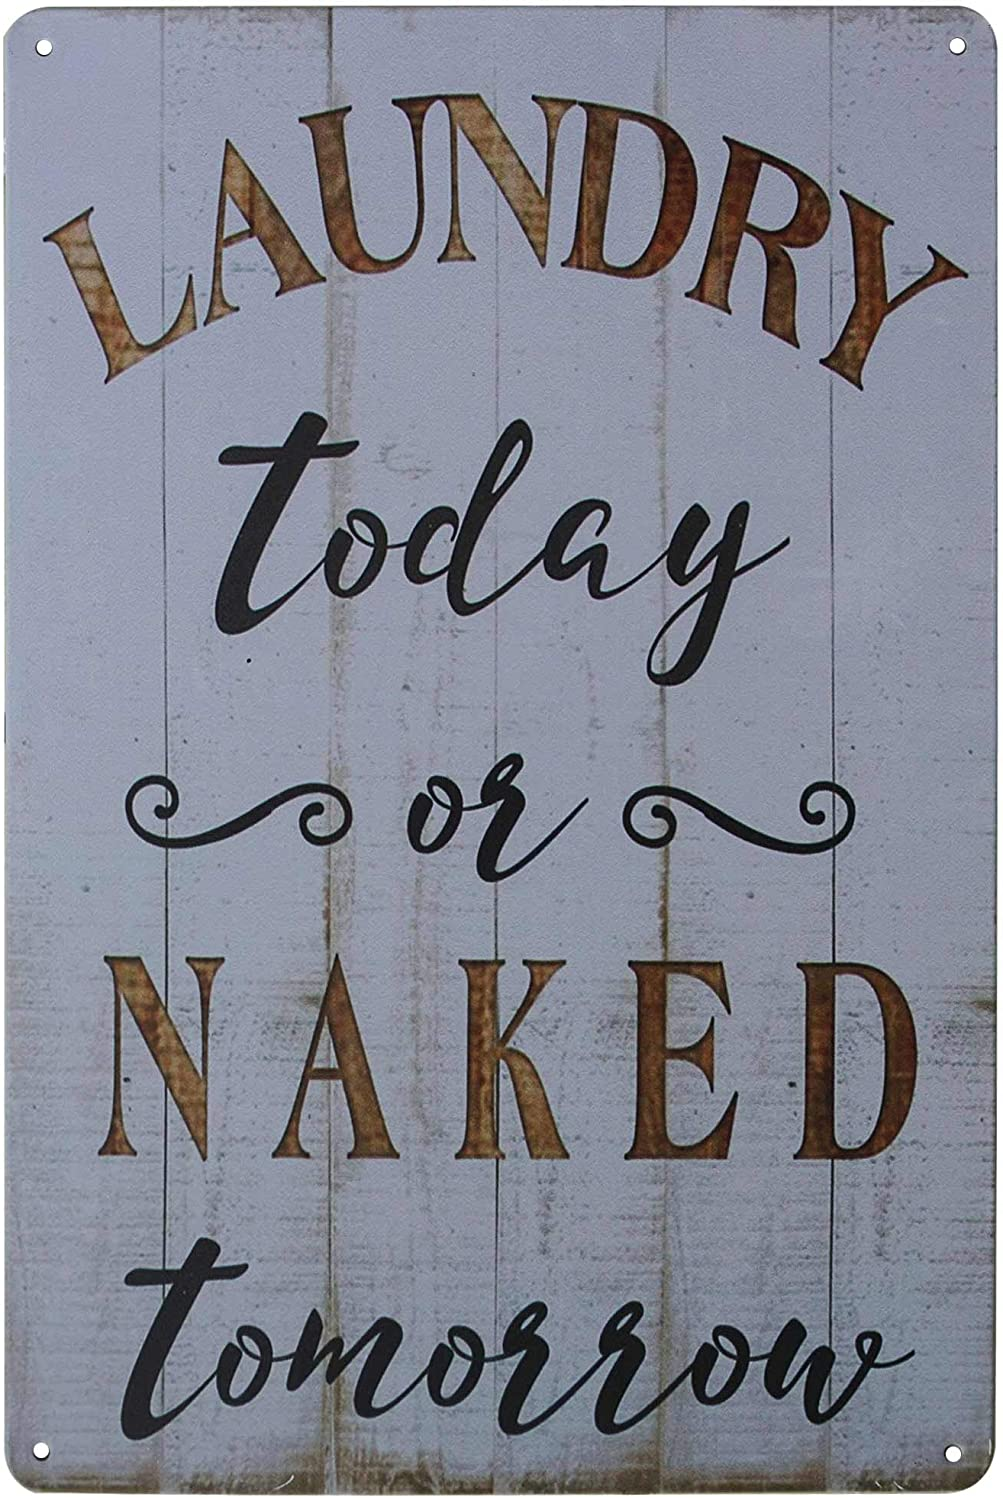 PXIYOU Laundry Today or Naked Tomorrow Vintage Wall Plaque Sign Home Bathroom Laundry Room Decor Wash Room Signs White 8X12Inch